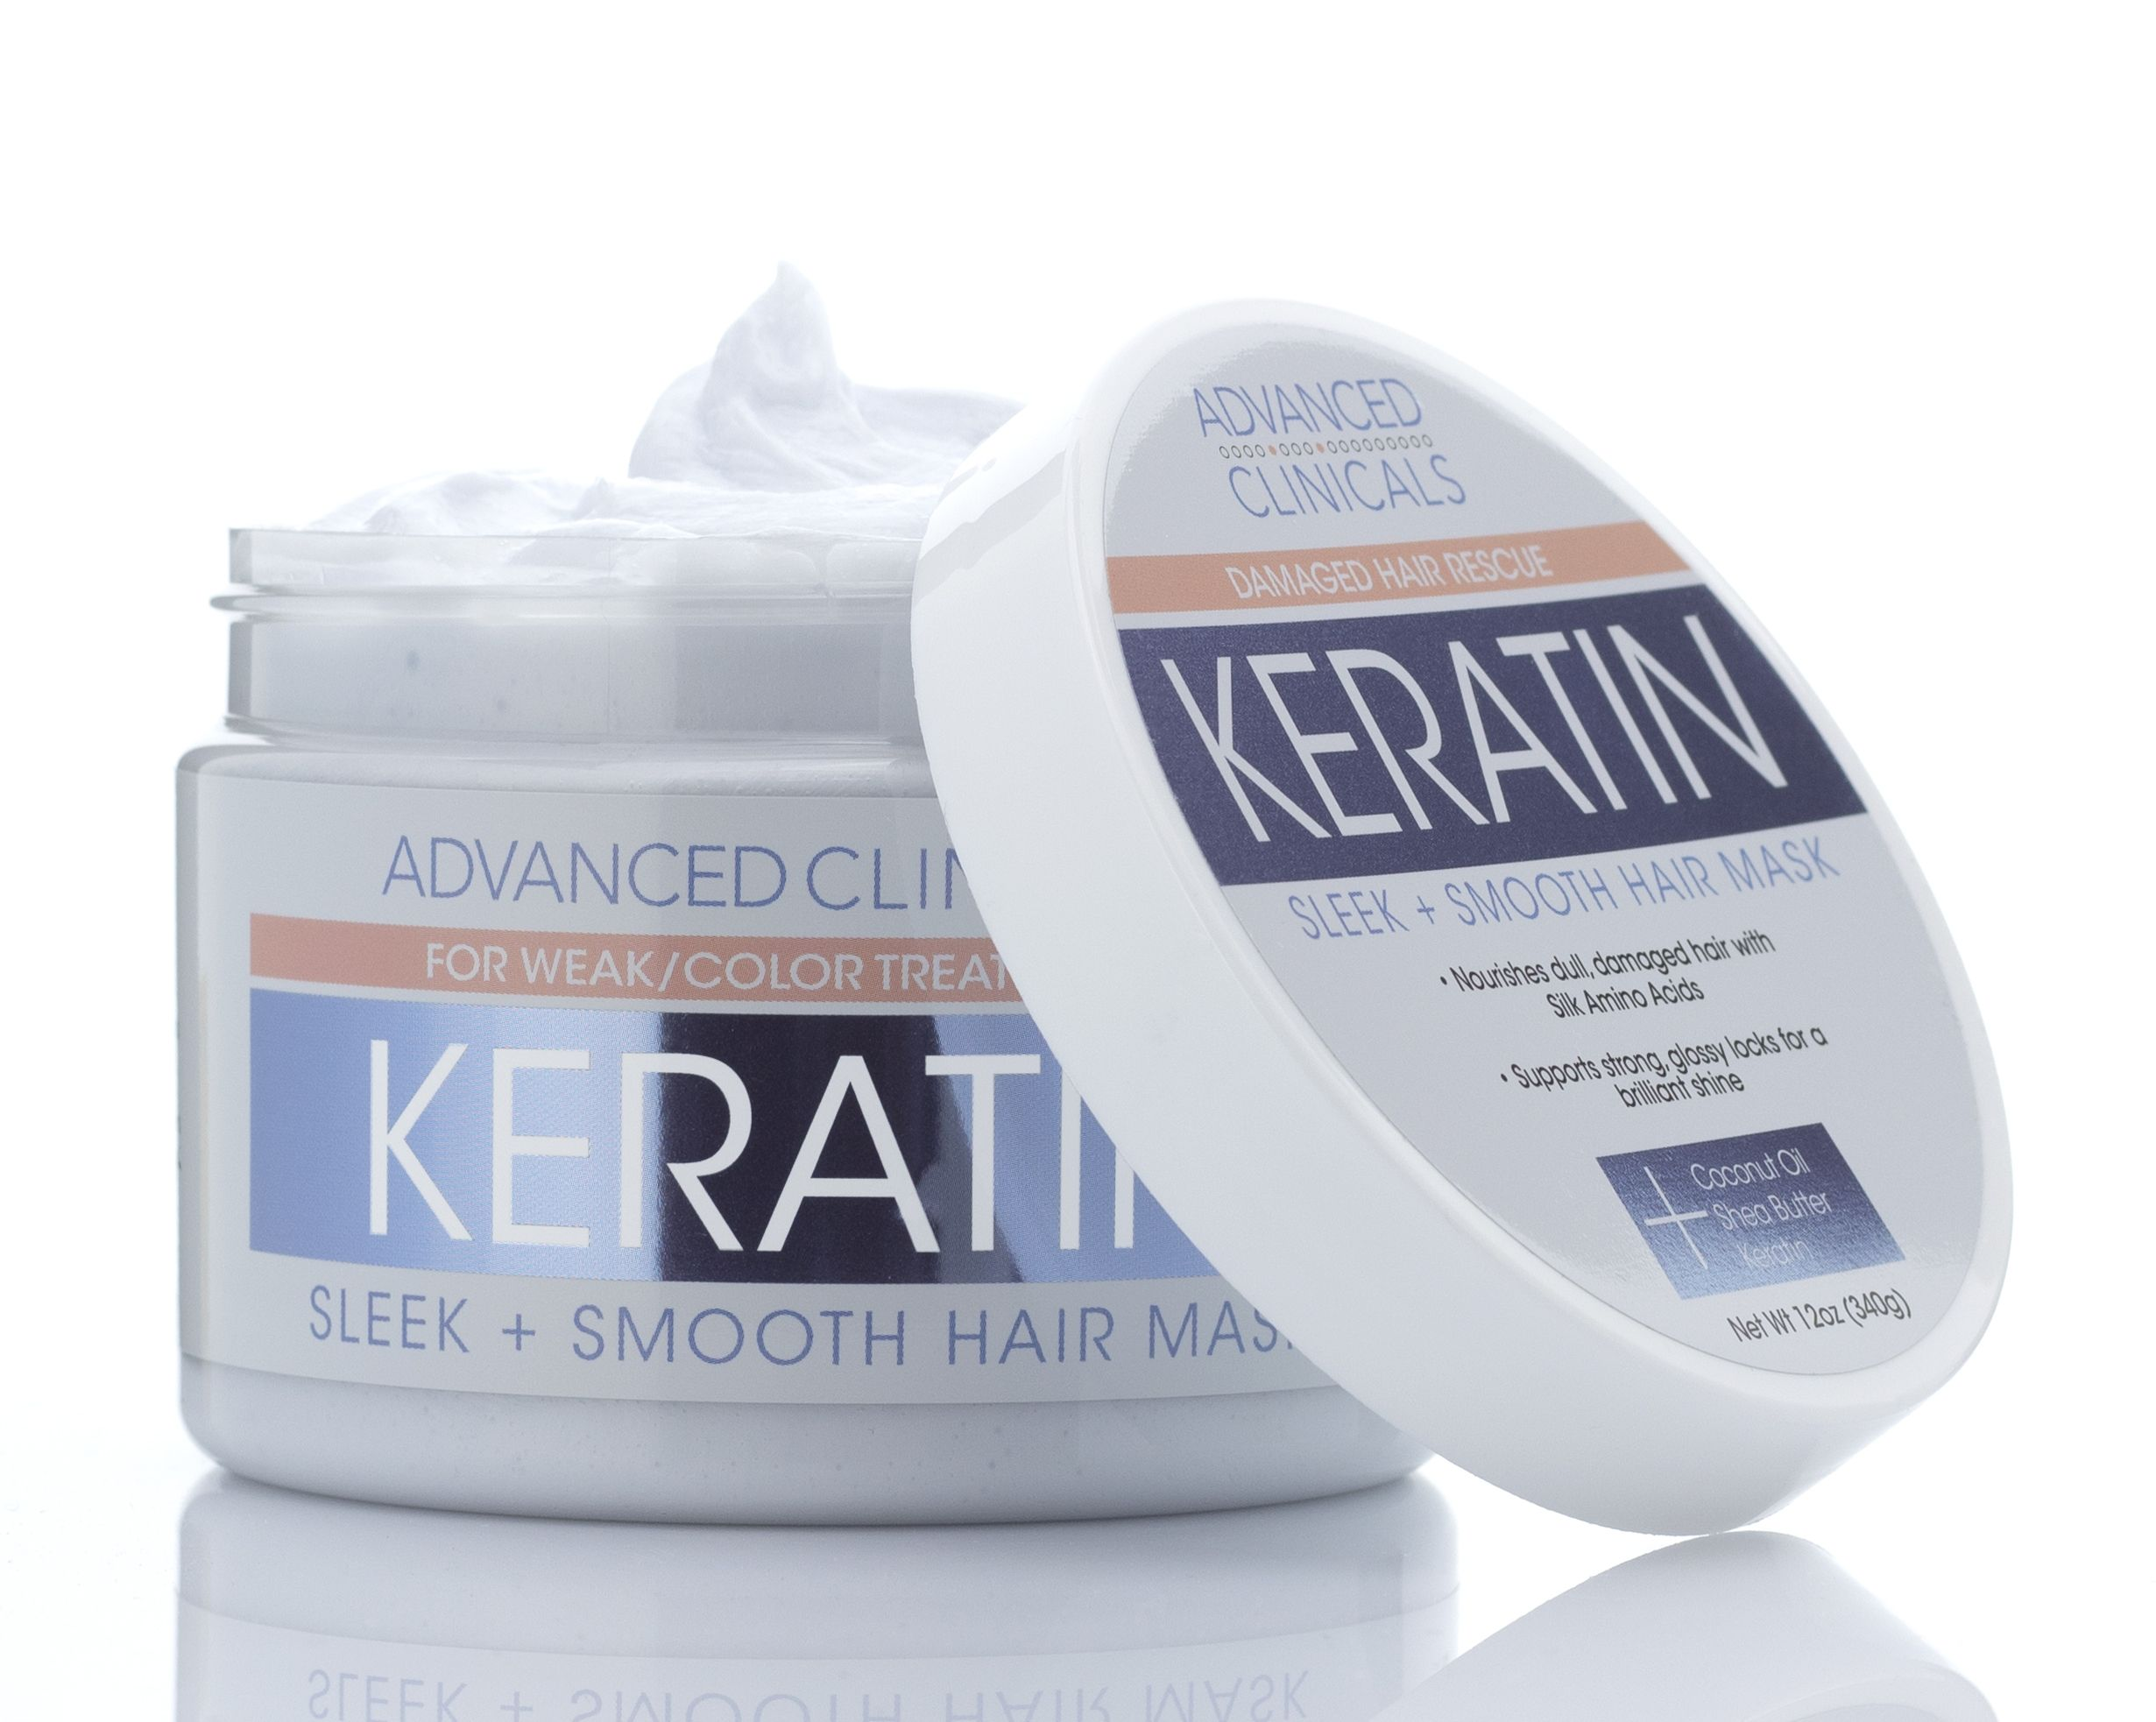 Advanced Clinicals Keratin Sleek Smooth Hair Mask Conditioner Mask For Weak And Color Treated Hair 12 Fl Oz Walmart Com In 2021 Smooth Hair Mask Hair Treatment Mask Keratin Hair Treatment